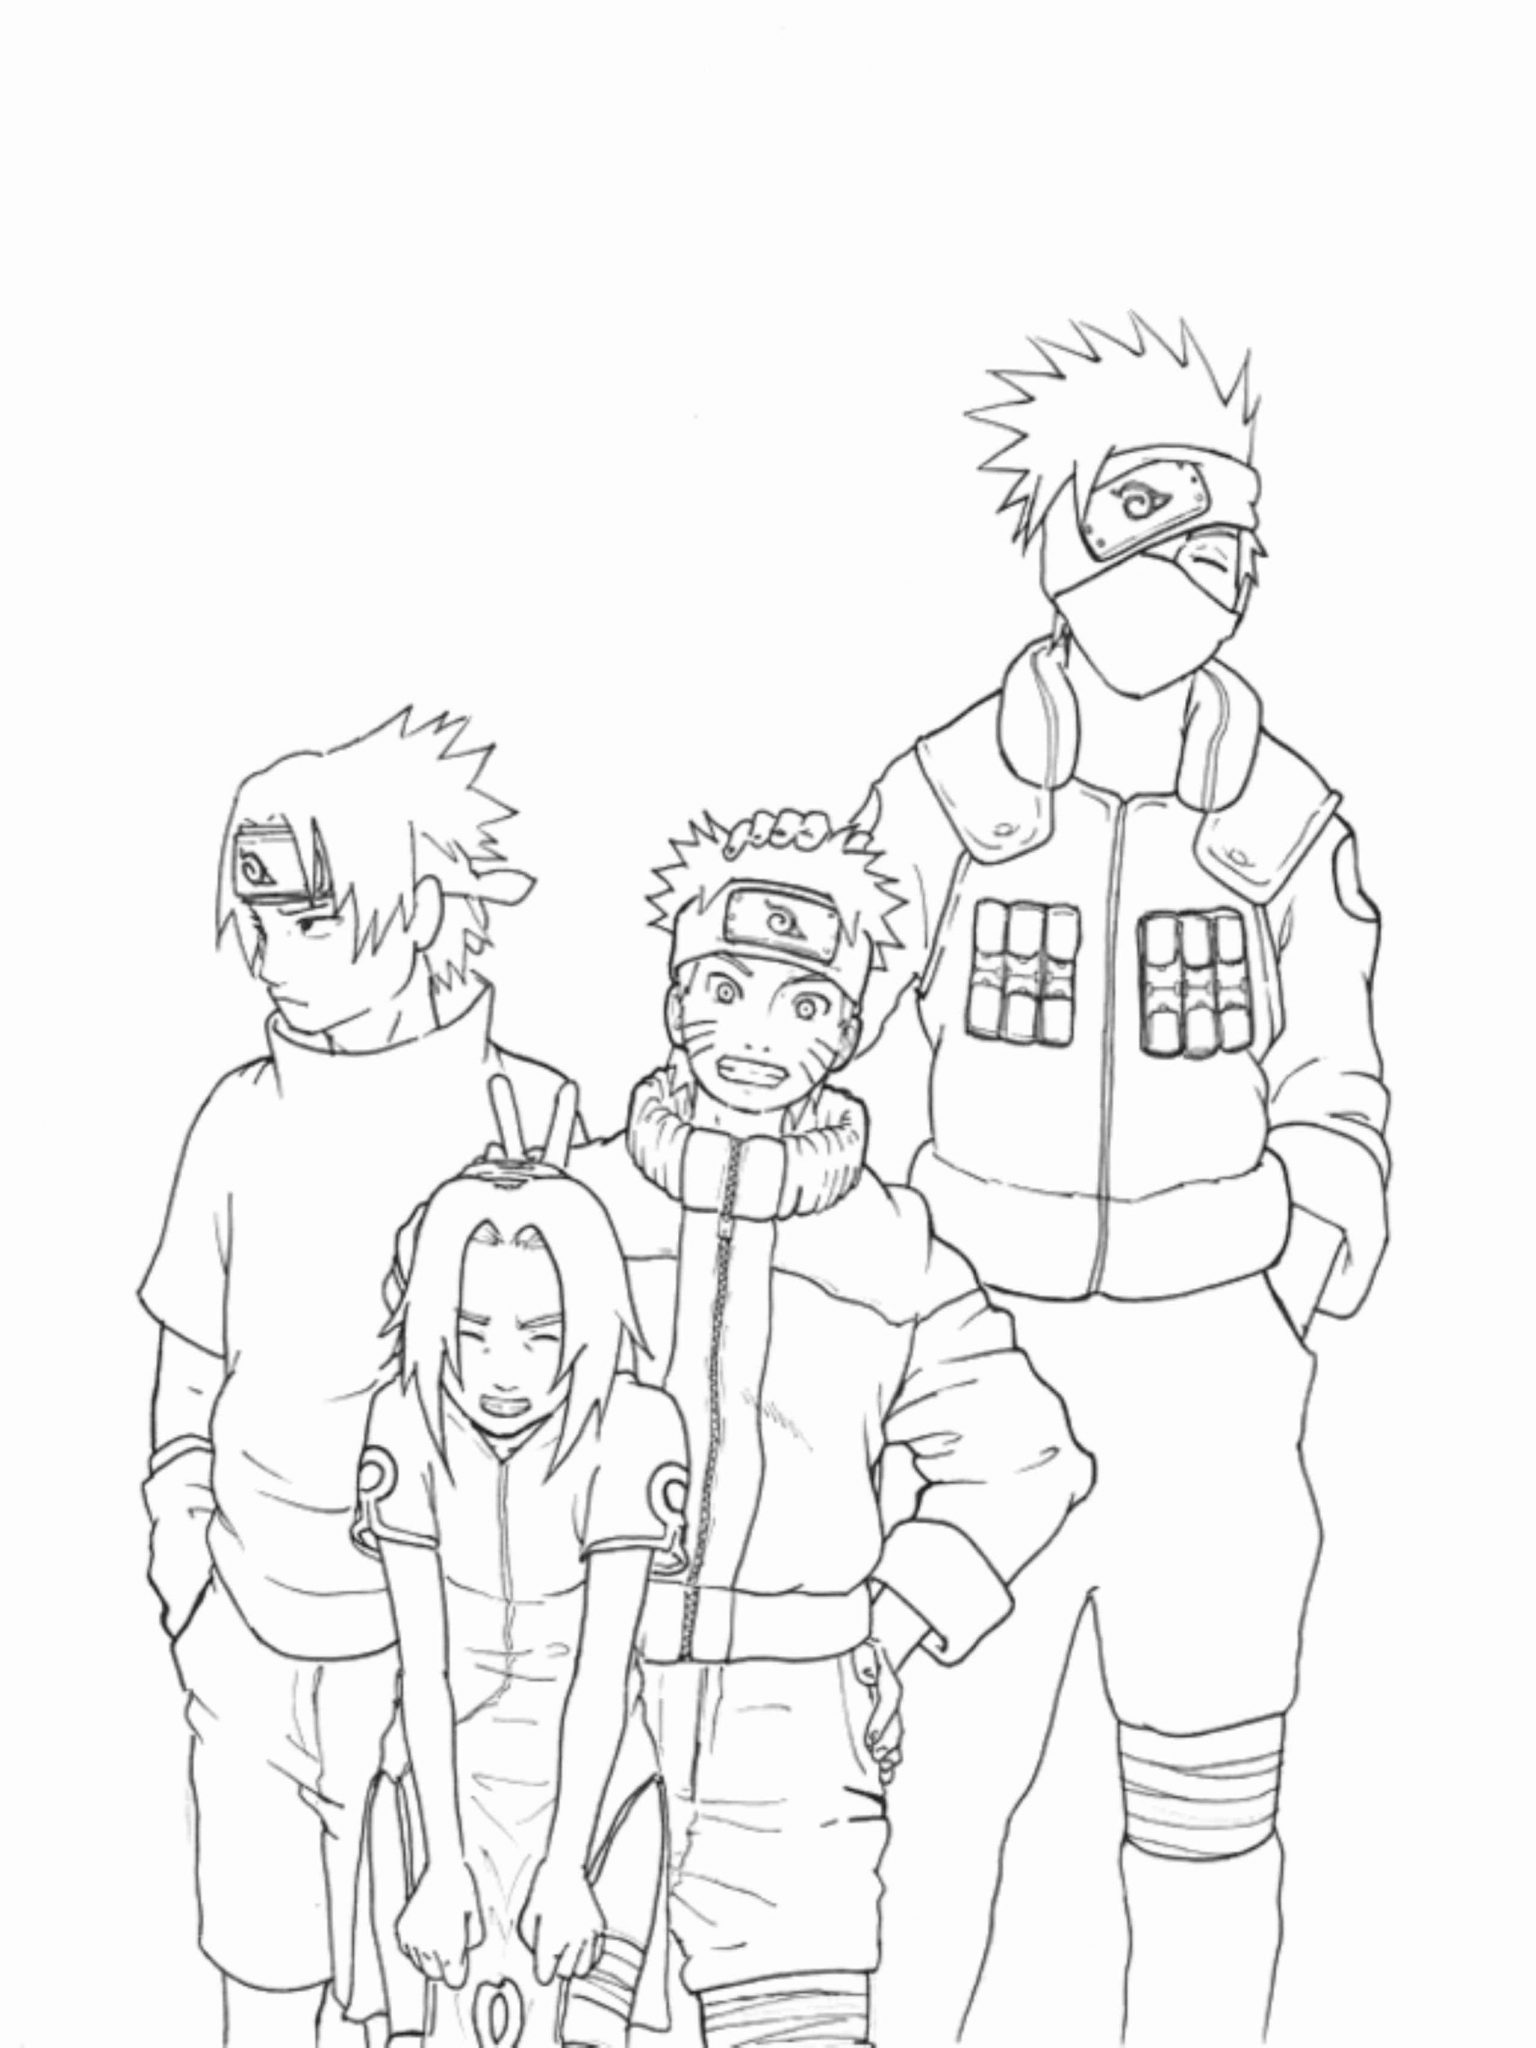 naruto shippuden coloring book naruto shippuden coloring pages to download and print for free naruto book shippuden coloring